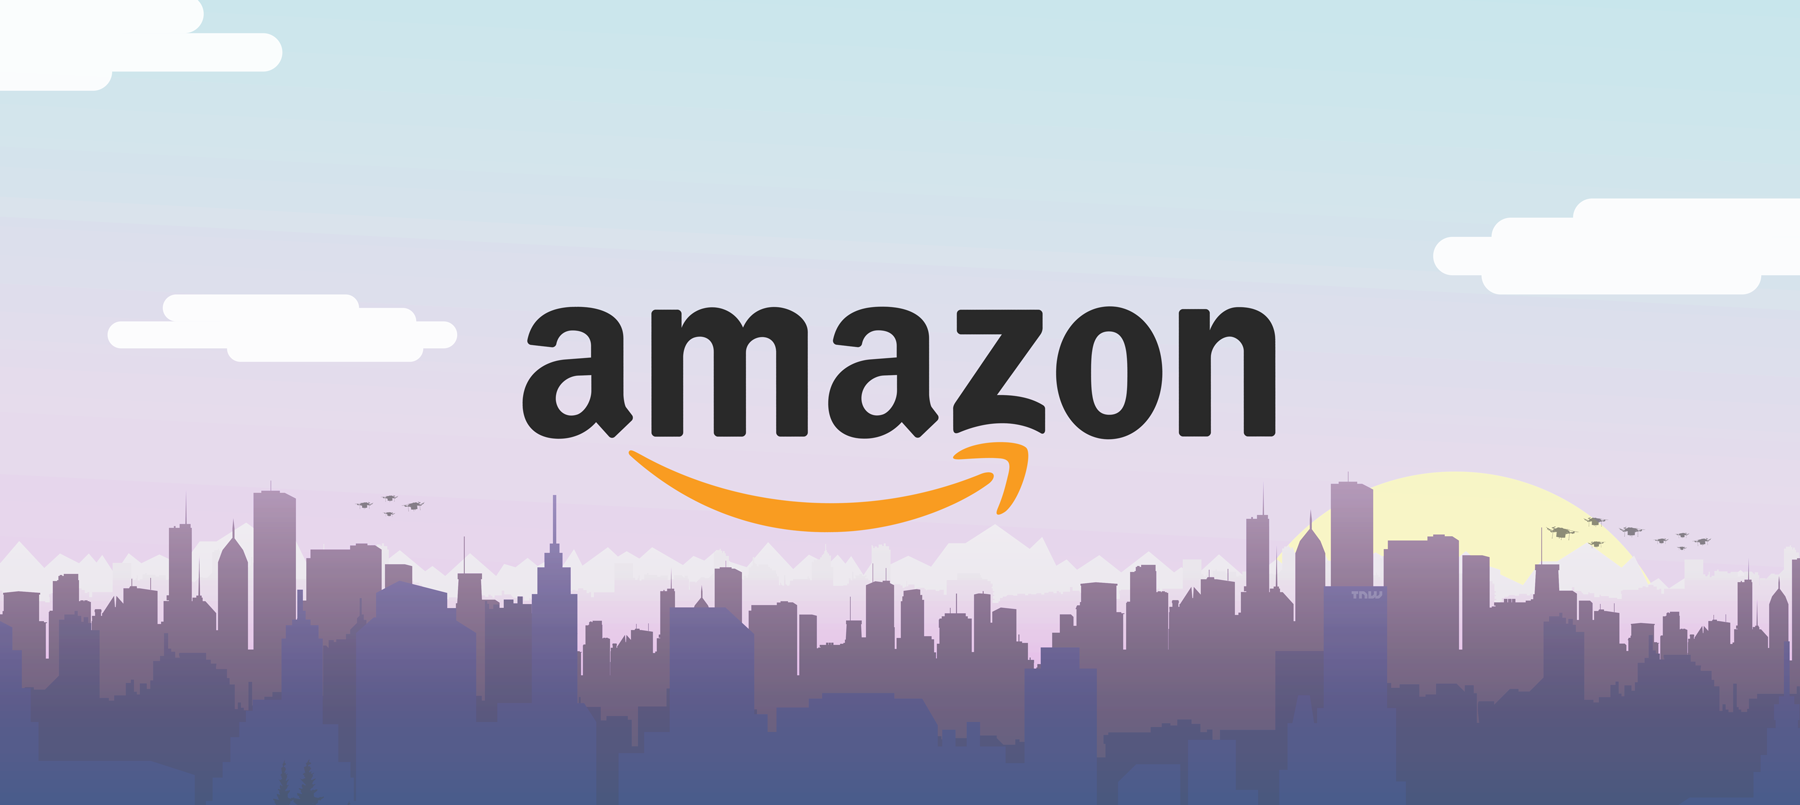 Amazon To Hire 75,000 More Workers As Initial 100,000 Jobs